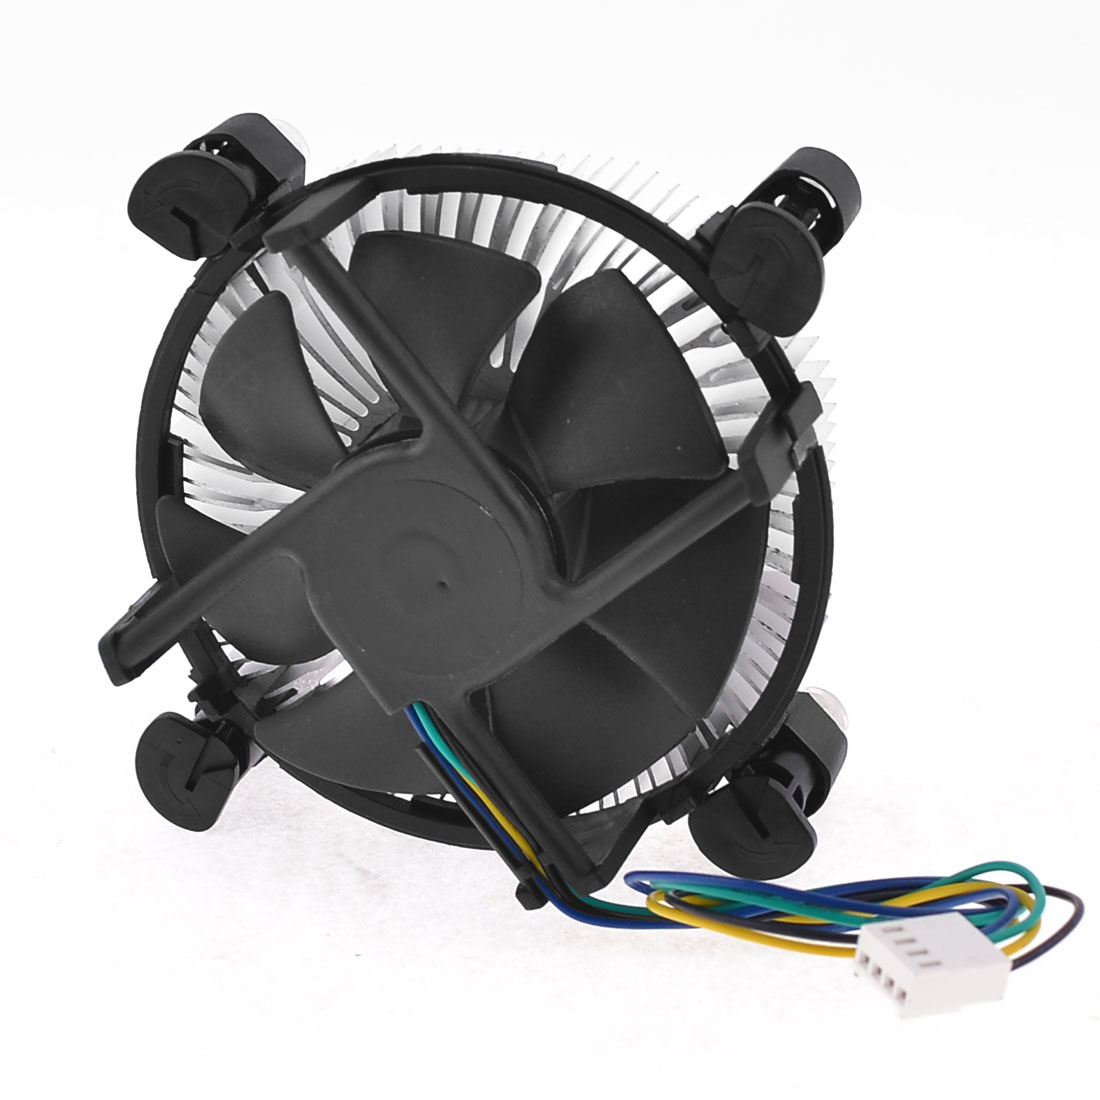 Rounded CPU Heatsink Cooling Laptop Fan 2500RPM DC12V for Intel Core